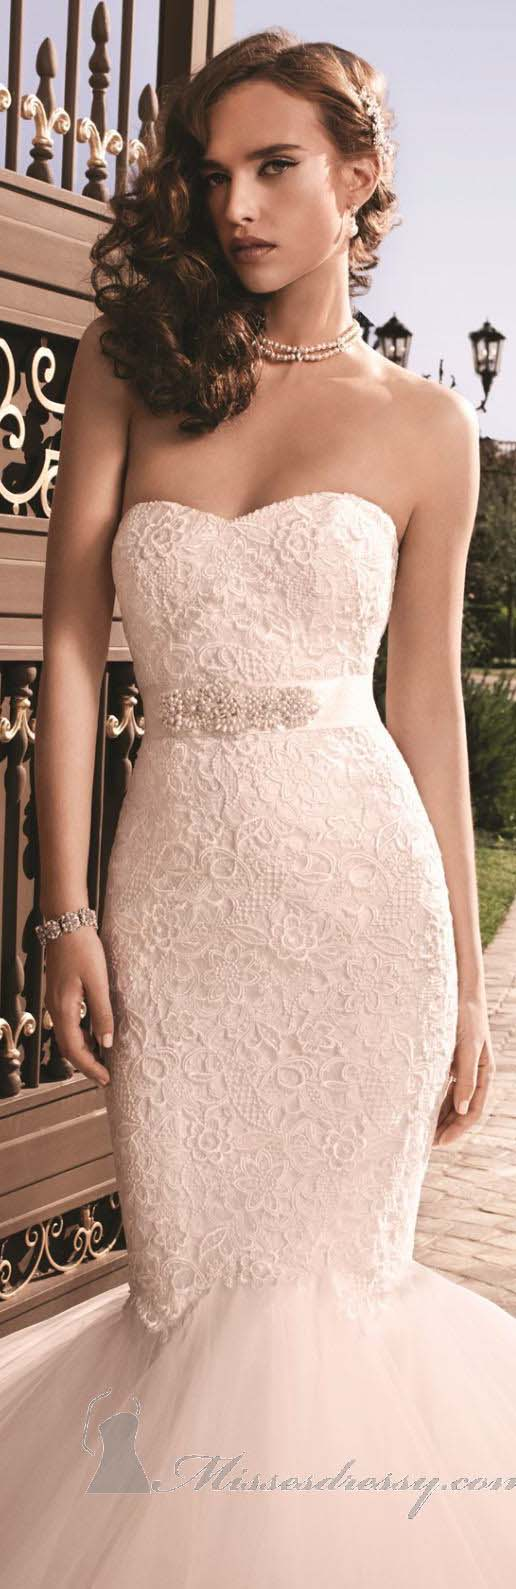 Guipure lace mermaid gown by casablanca bridal weddings the